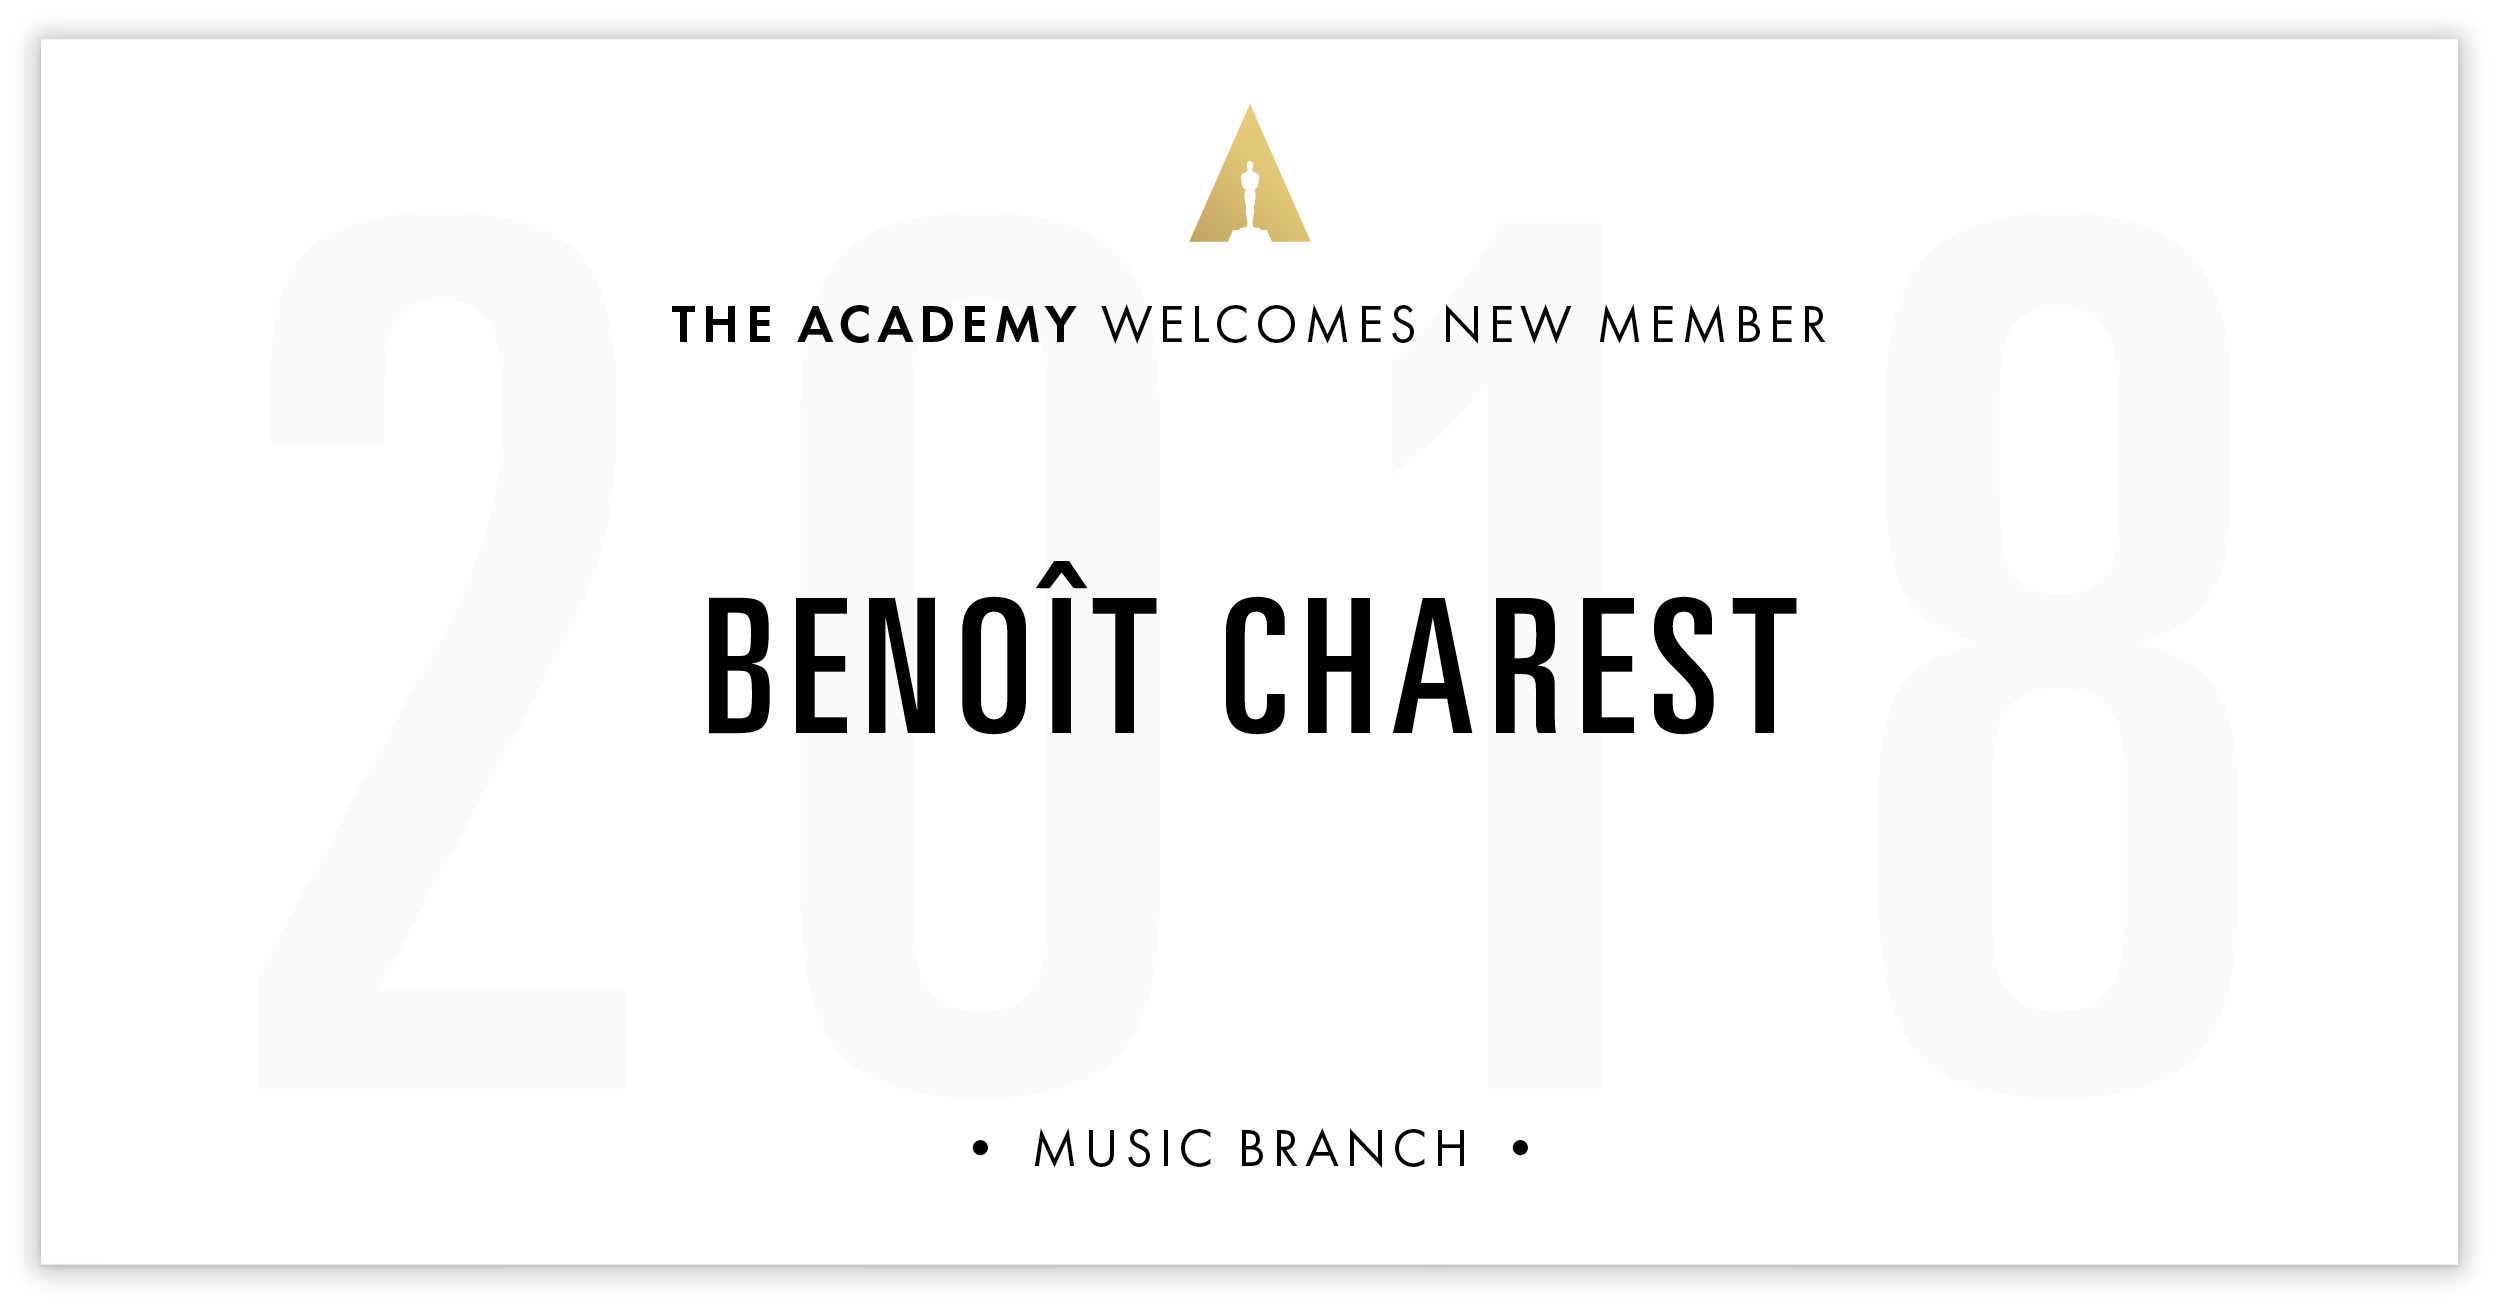 Benoît Charest is invited!